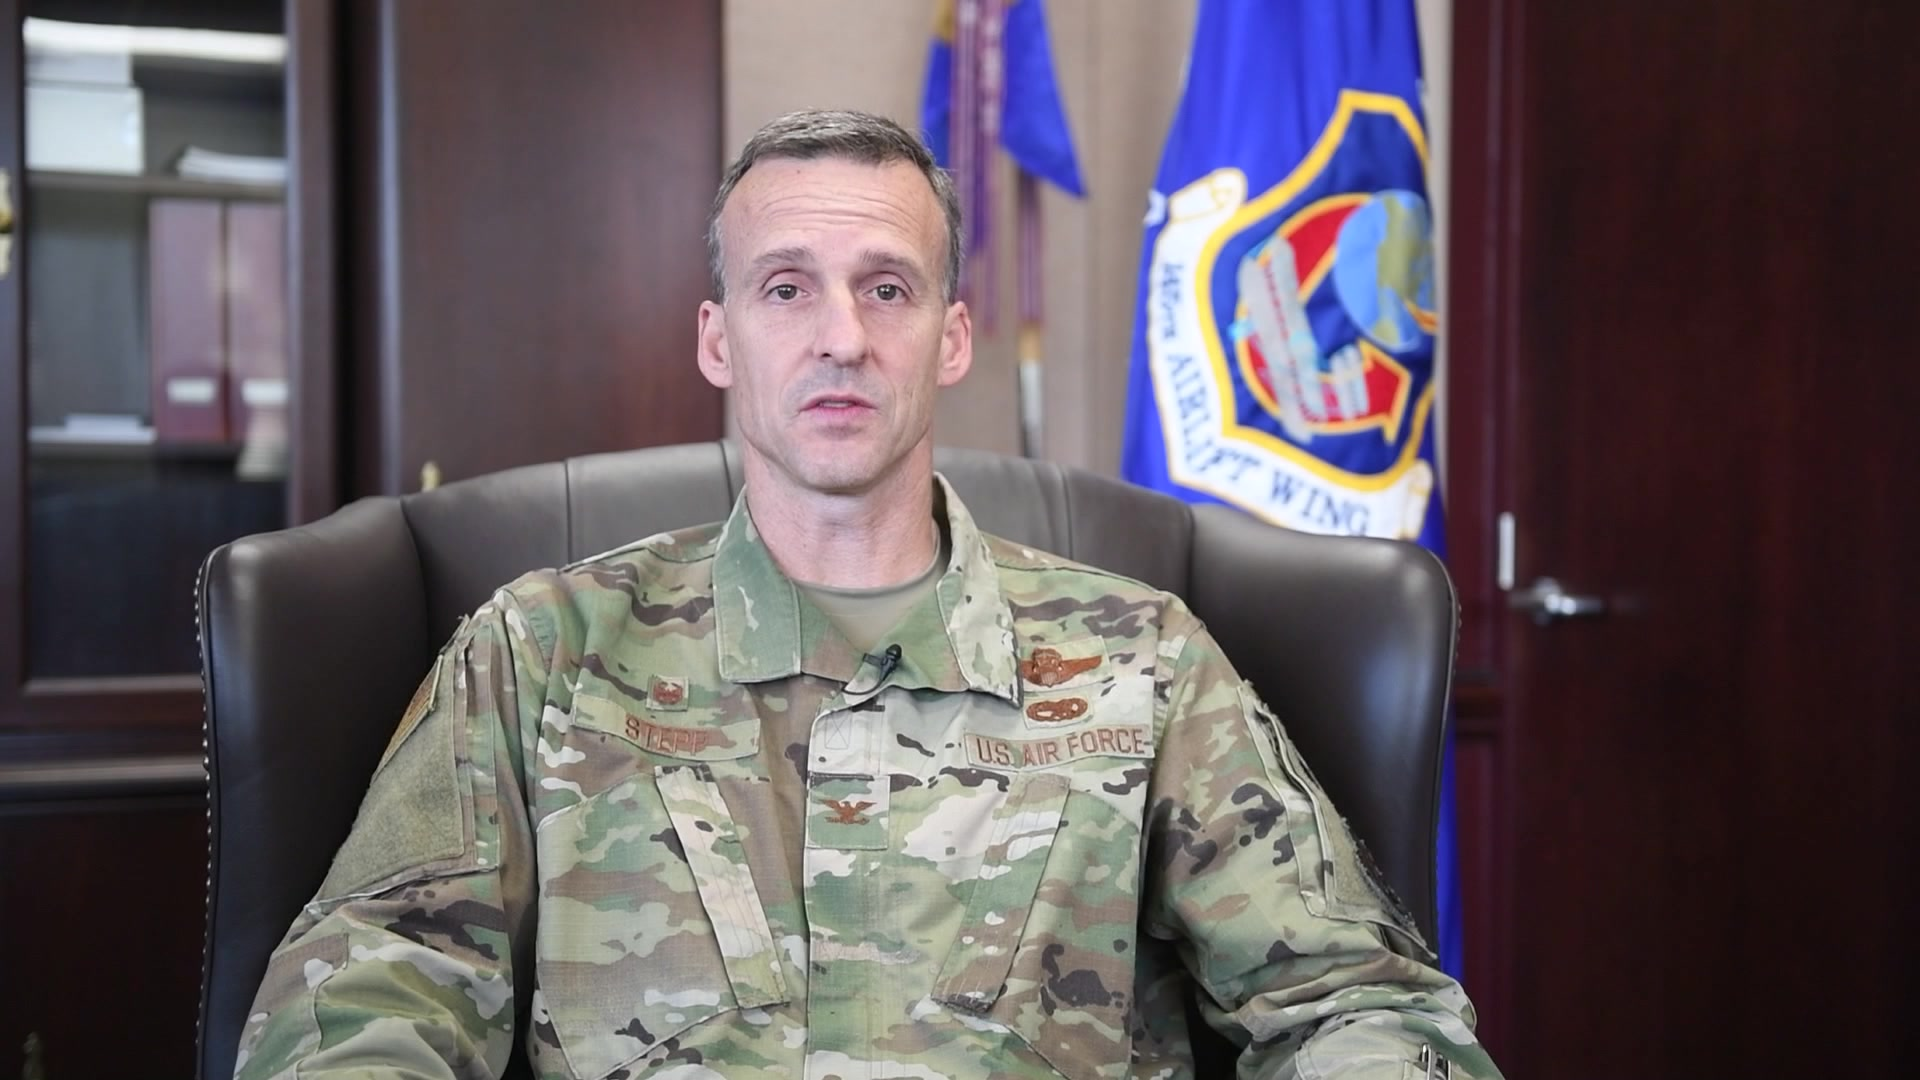 Commander of the 145th Airlift Wing, Colonel Joseph H. Stepp IV delivers a pre-drill video message to Airmen as a way to connect during COVID measures.